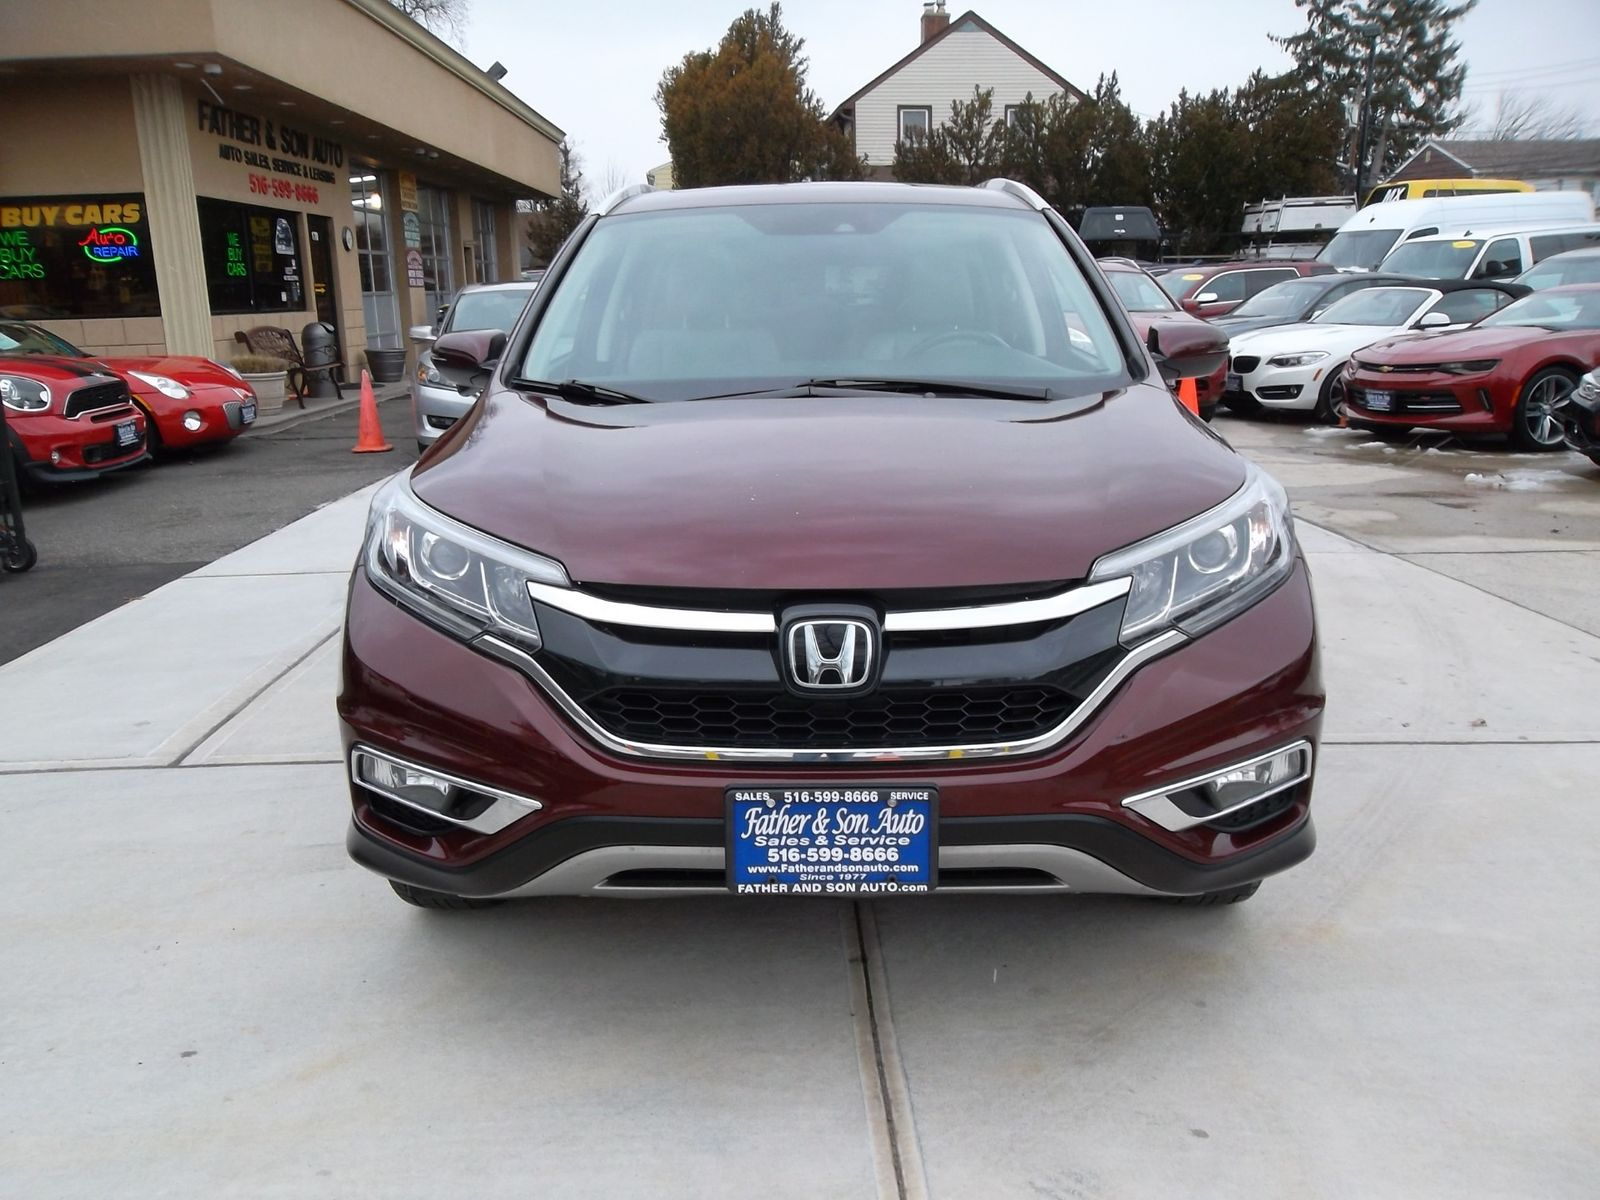 2016 honda cr v touring city new father son auto corp in lynbrook  [ 1600 x 1200 Pixel ]